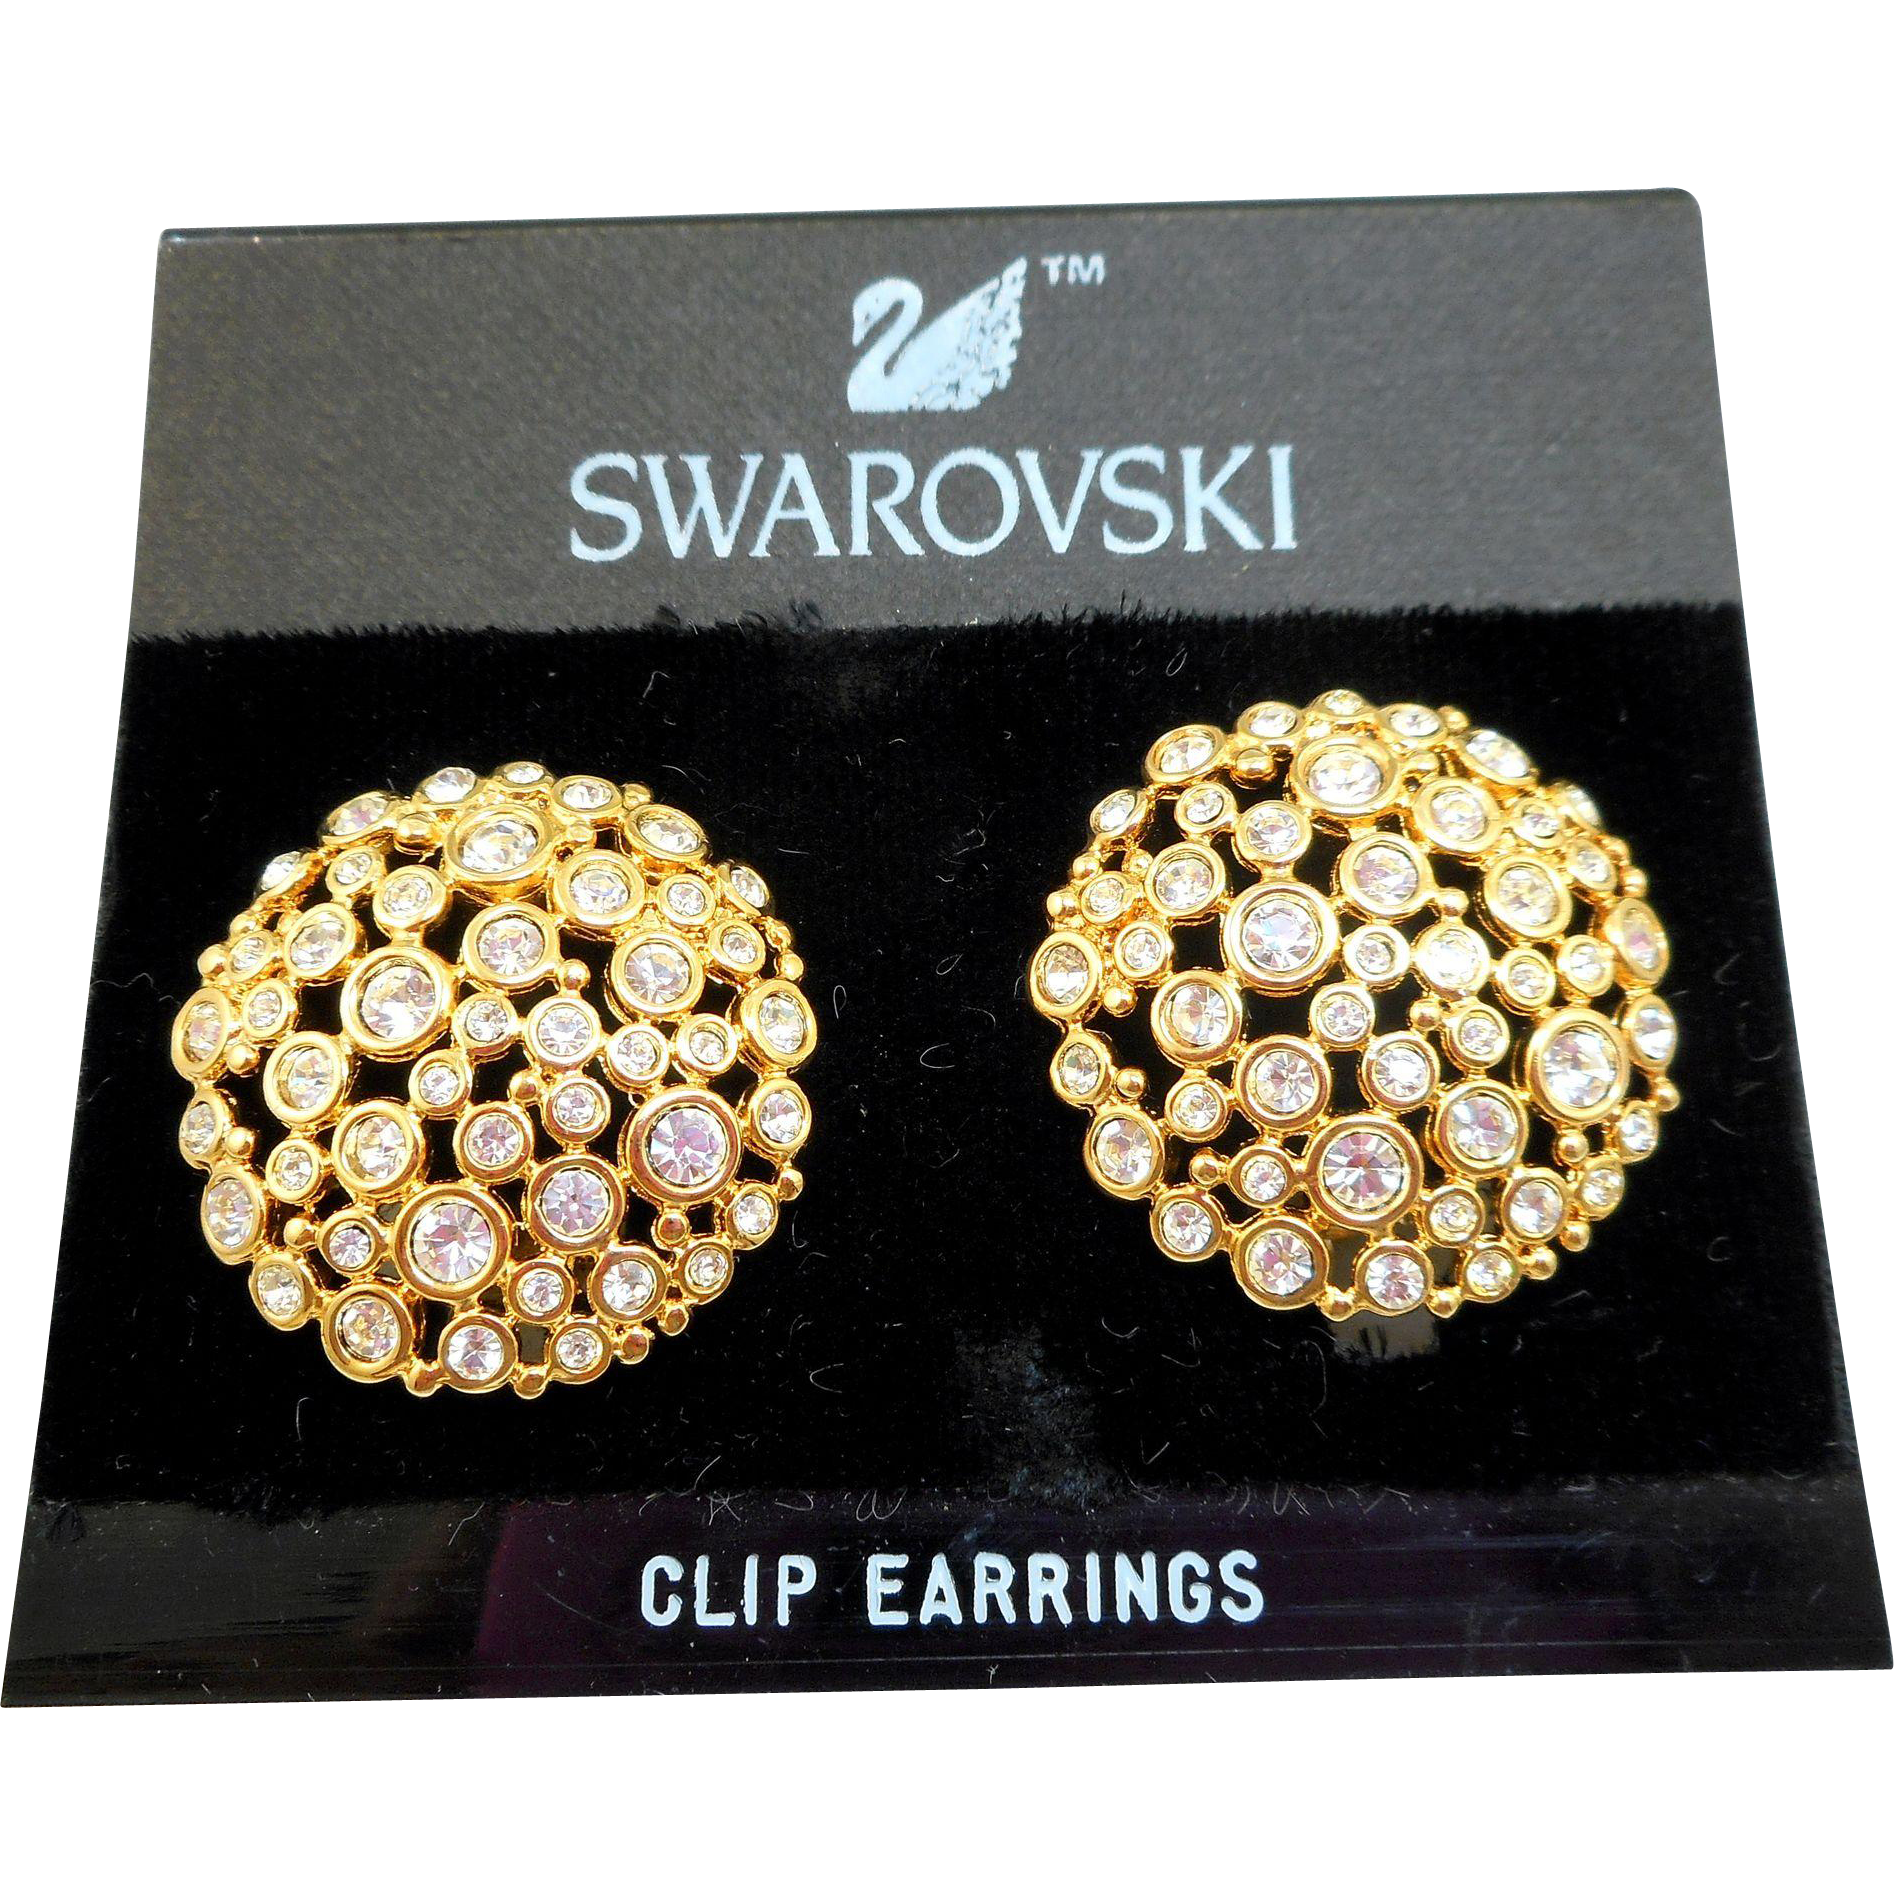 NOS Swarovski Bubbles Earrings - MOC